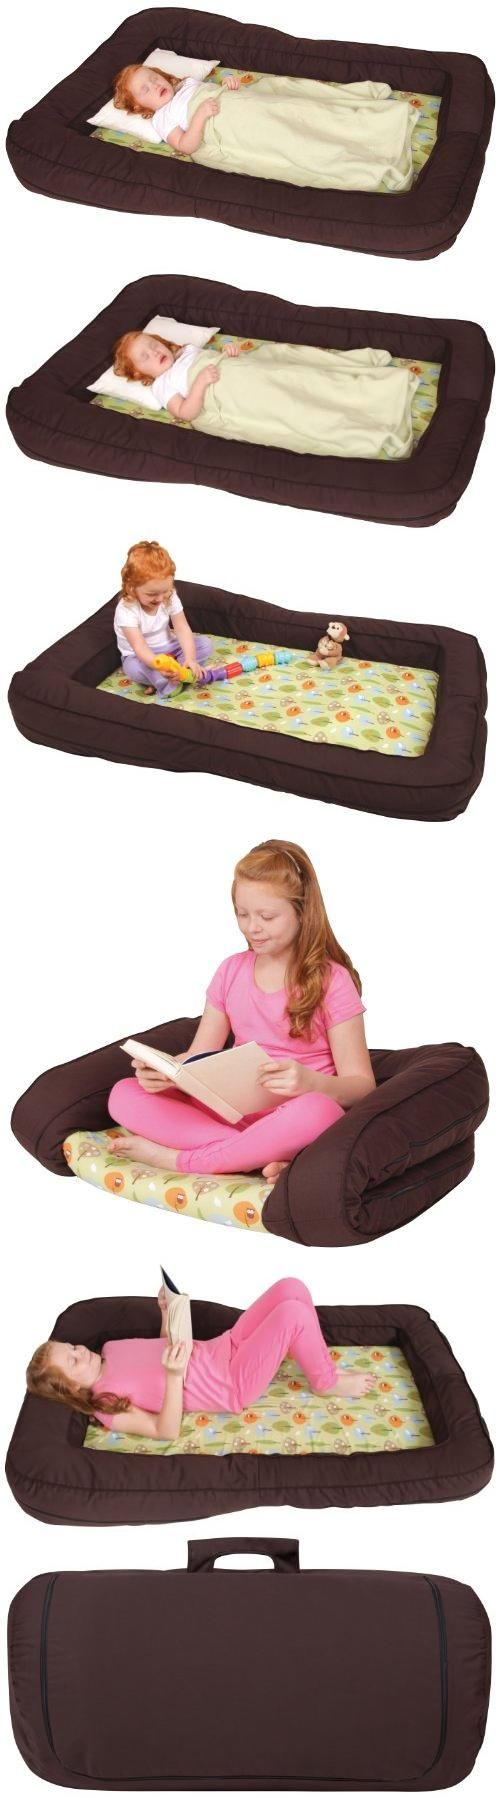 Toddler travel bed with sides - Toddler Travel Baby Travel Babies Stuff 3 4 Beds Forests Random Stuff Random Things Baby Gadgets Woods